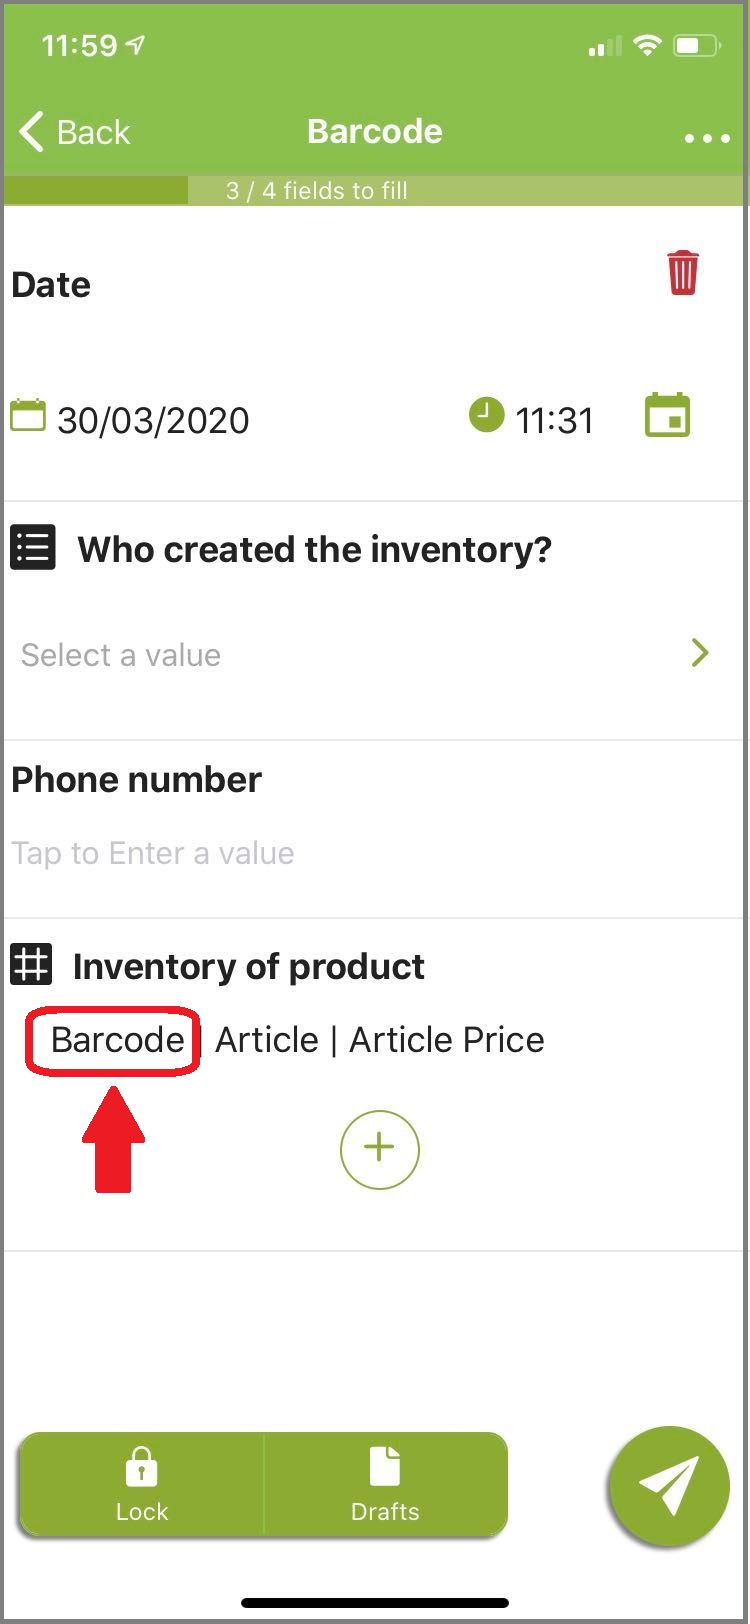 Open your form and click on the barcode.